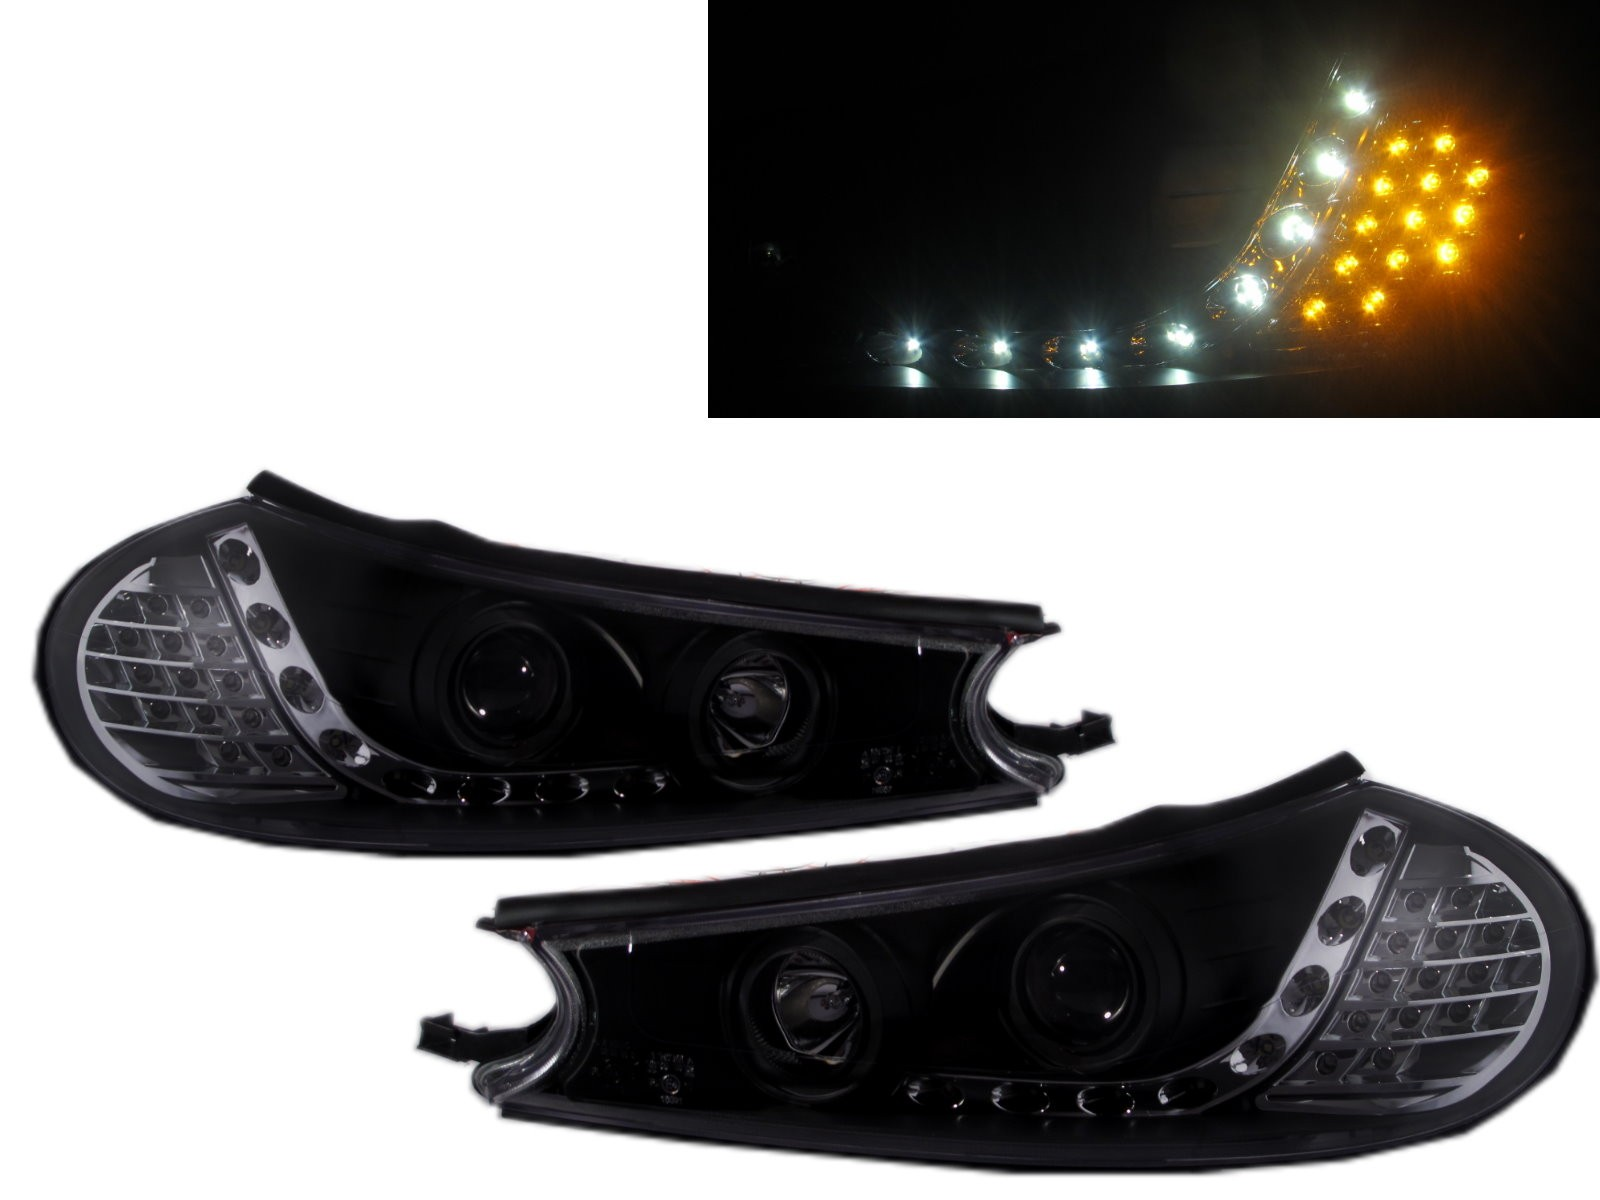 CrazyTheGod MONDEO HC/HE Second generation 1996-2001 Wagon 4D/5D Projector Headlight Headlamp Black for FORD LHD